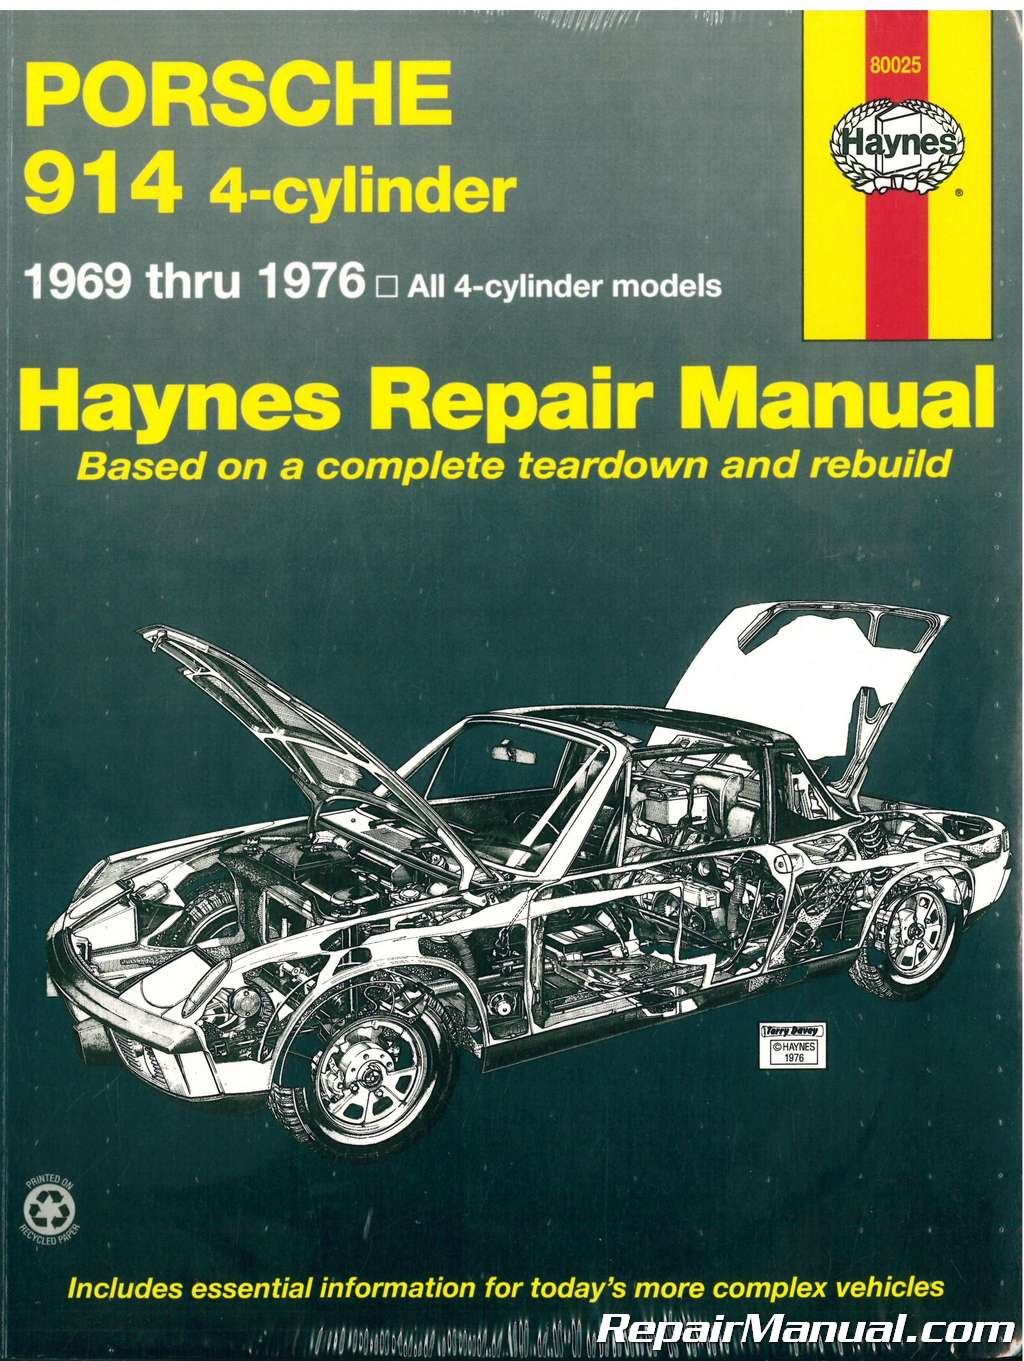 haynes porsche 914 4 cyl 1969 1976 auto repair manual rh repairmanual com Clark Forklift Repair Manual Scooter Repair Manual